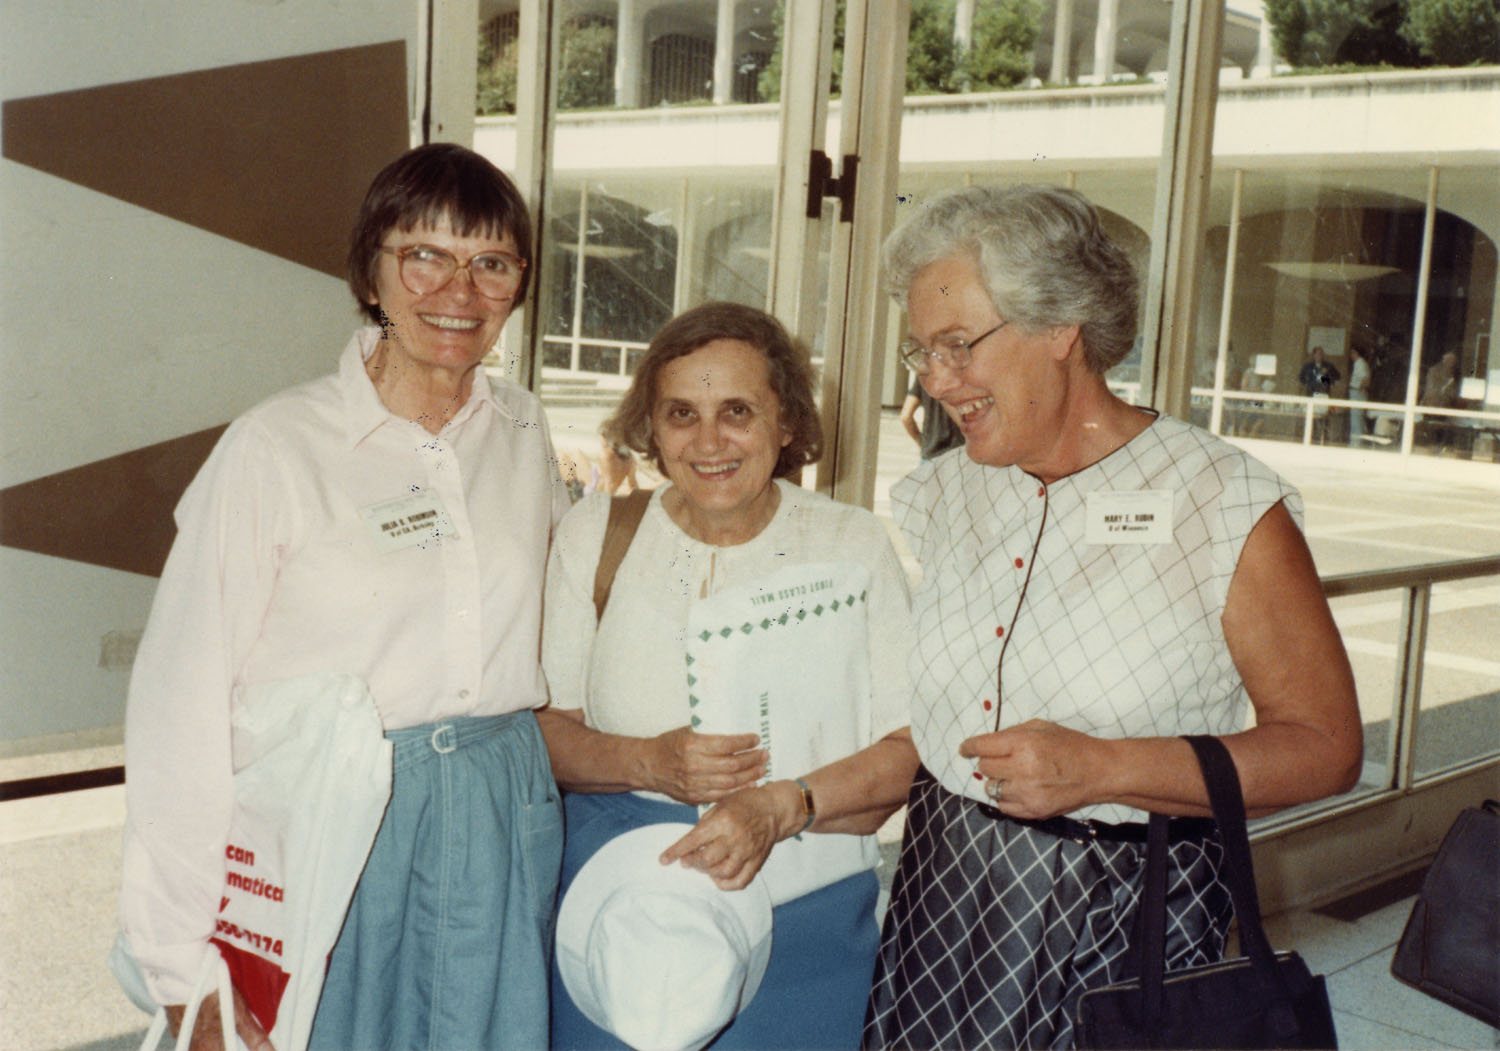 Julia Robinson, Lisl Gaal, and Mary Ellen Rudin